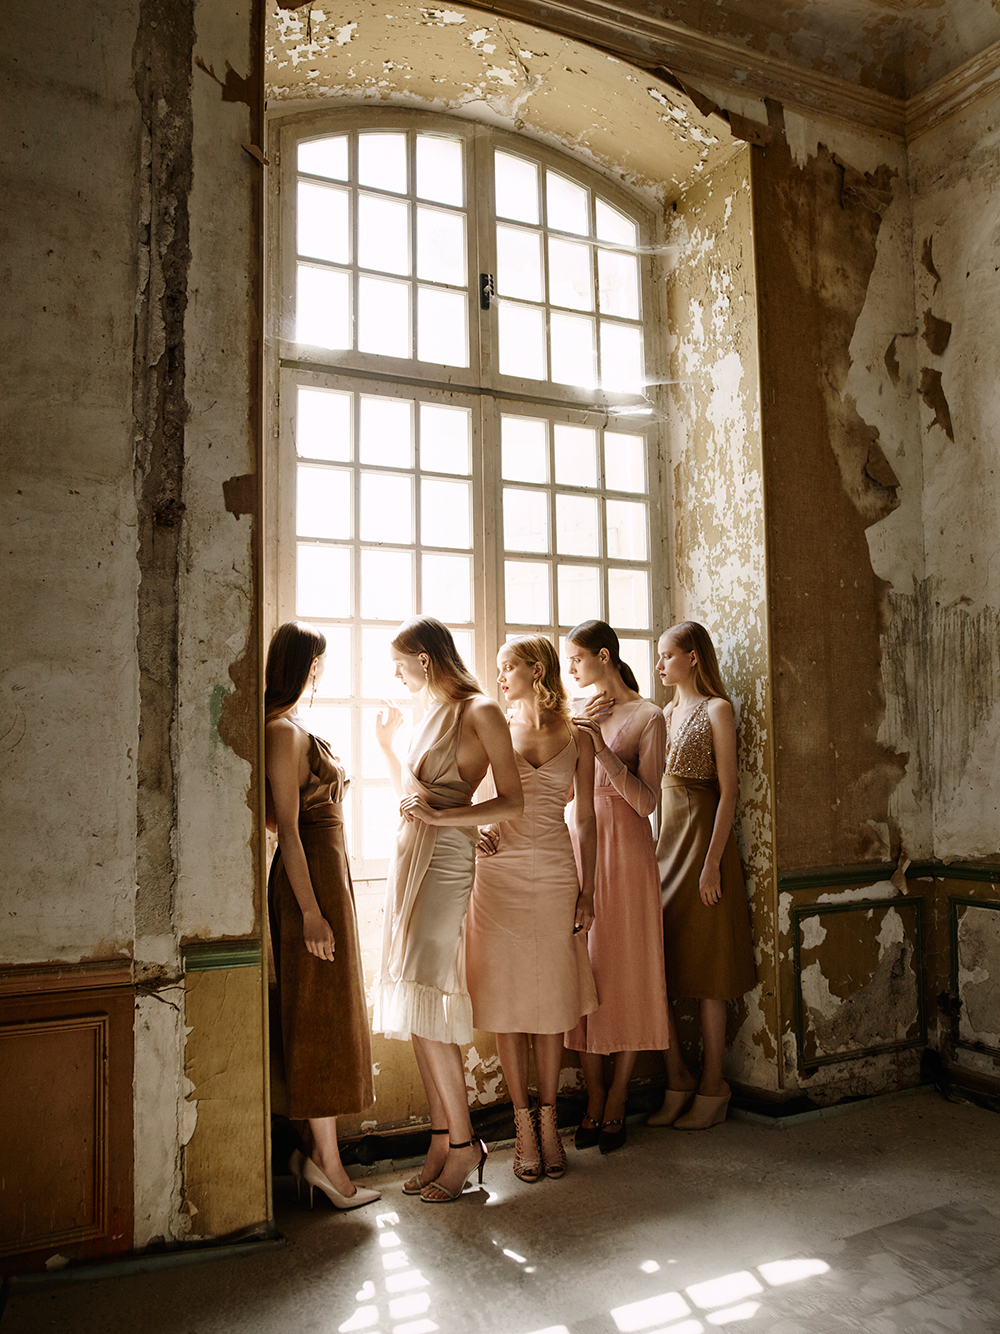 Models in pastels at window of decaying French Chateau Gudanes